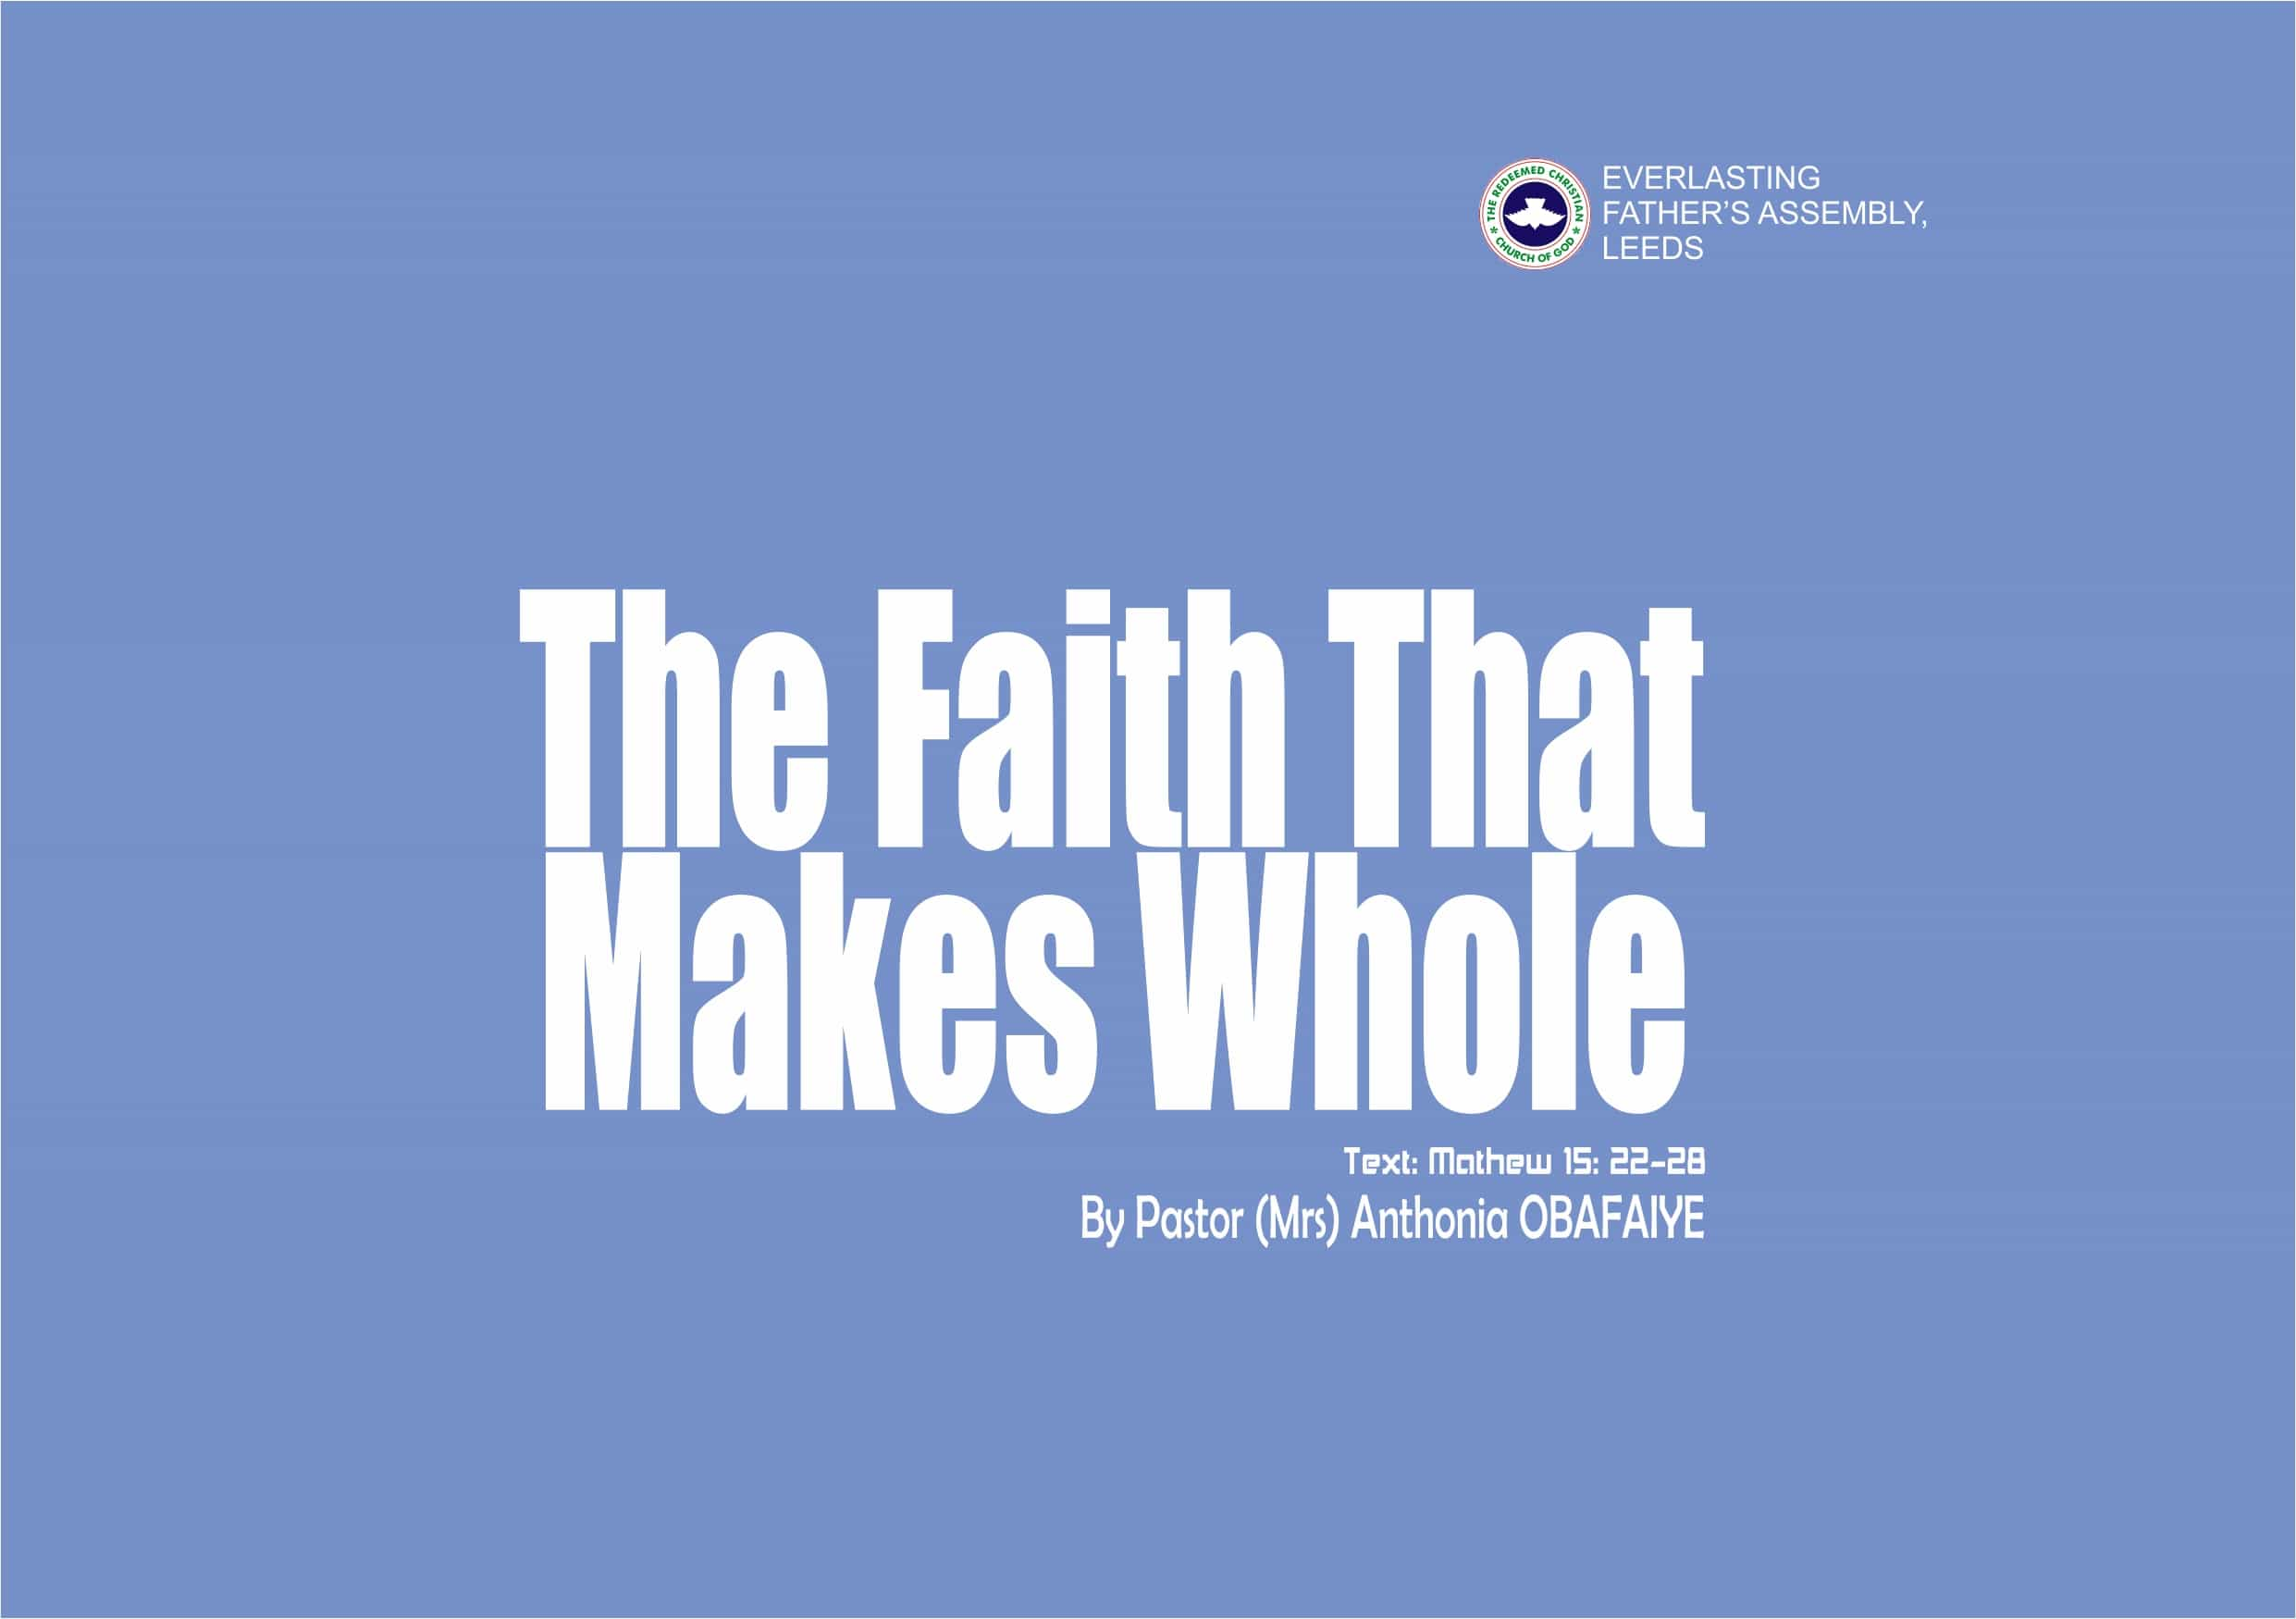 The Faith That Makes Whole, by Pastor (Mrs) Anthonia Obafaiye